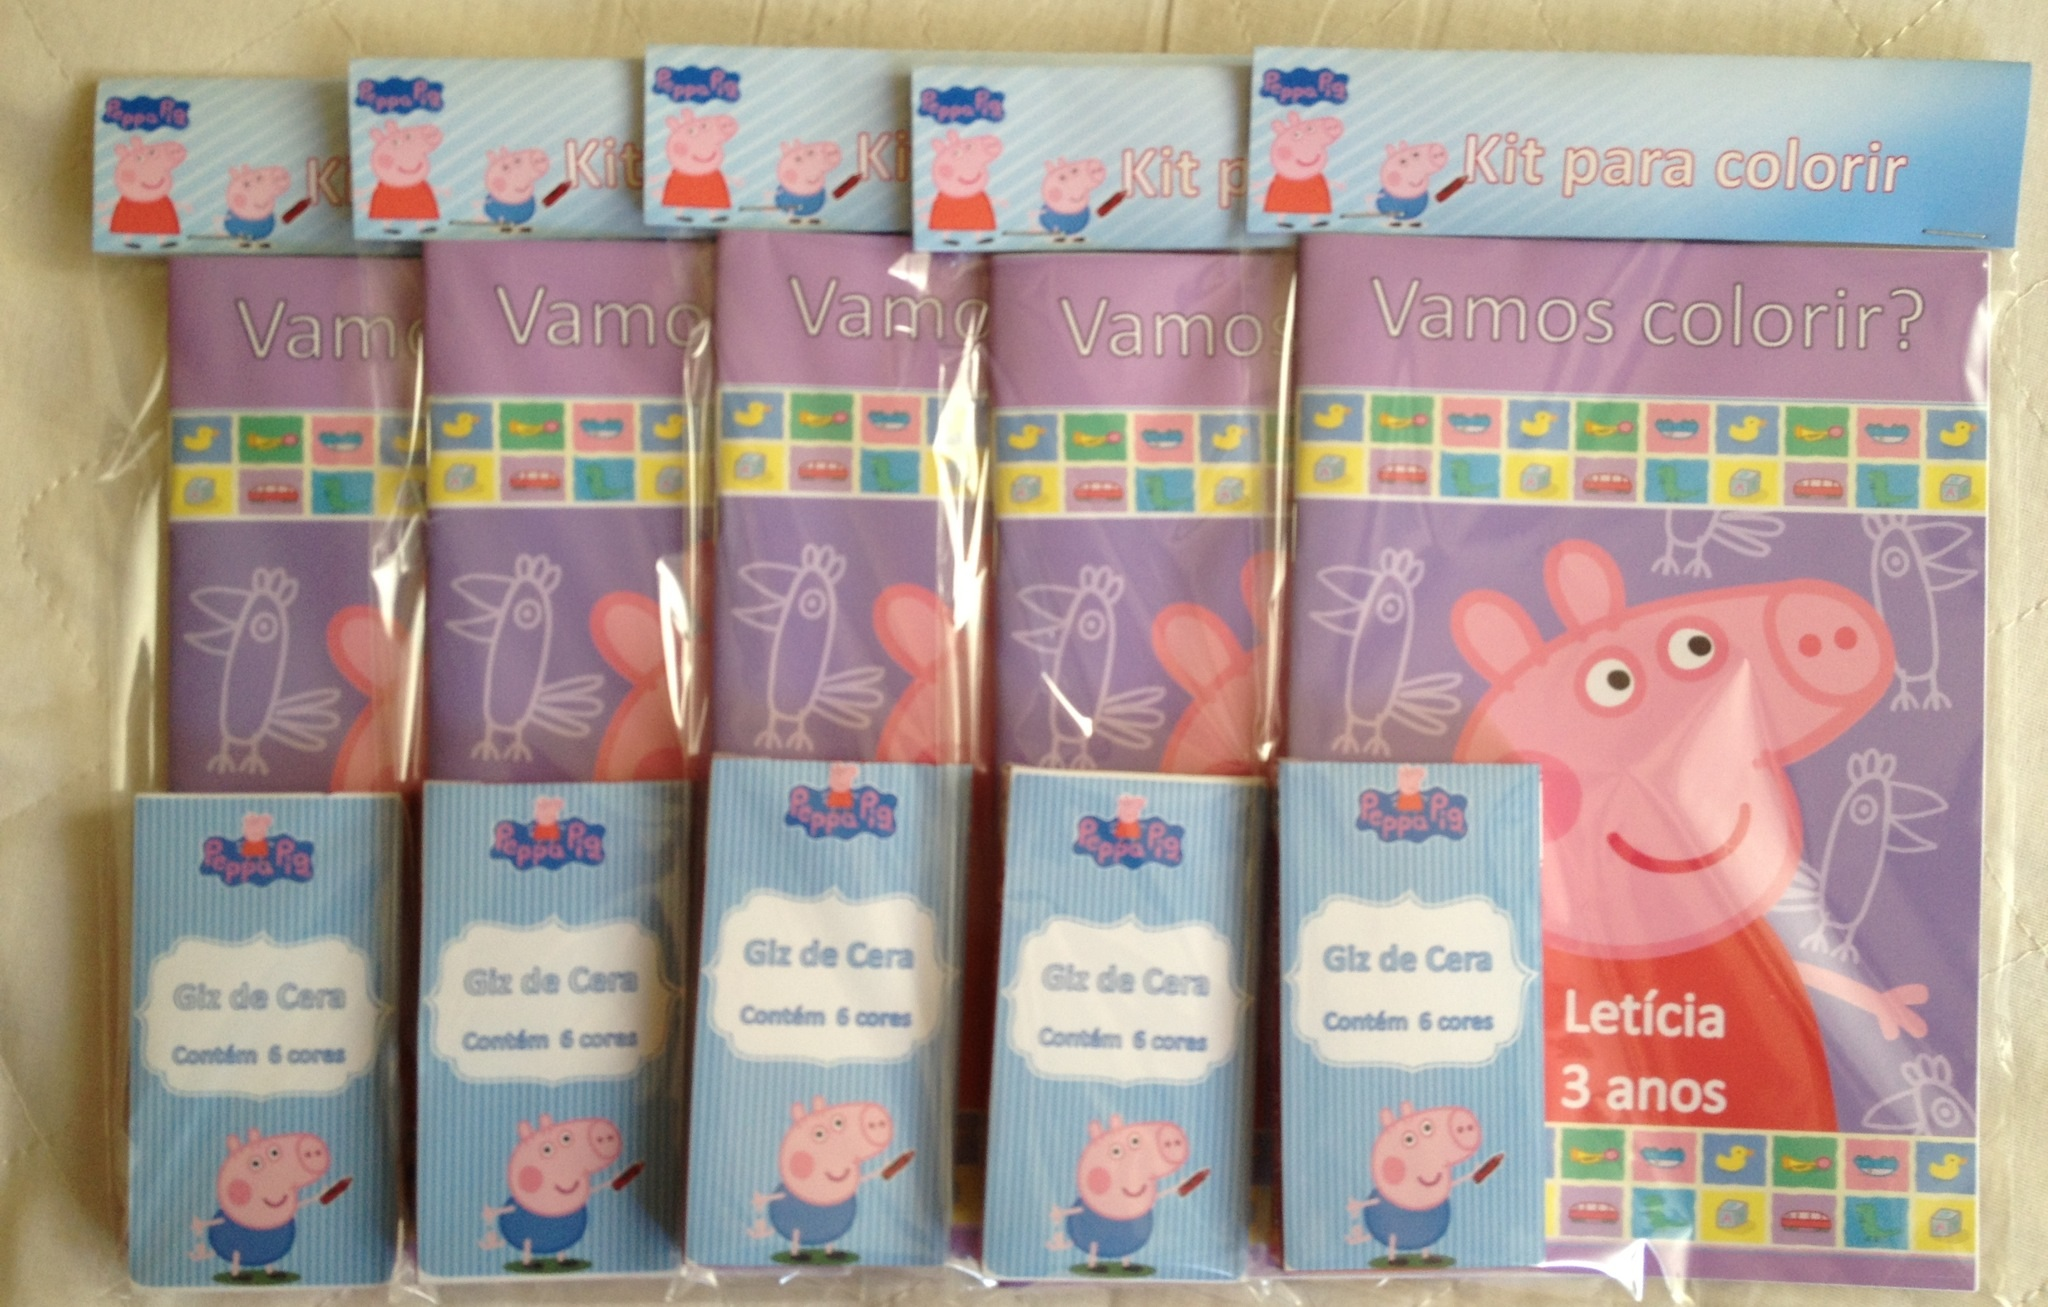 Kit Para Colorir Peppa Pig No Elo7 Le Jotave Personalizados 3cd8b4